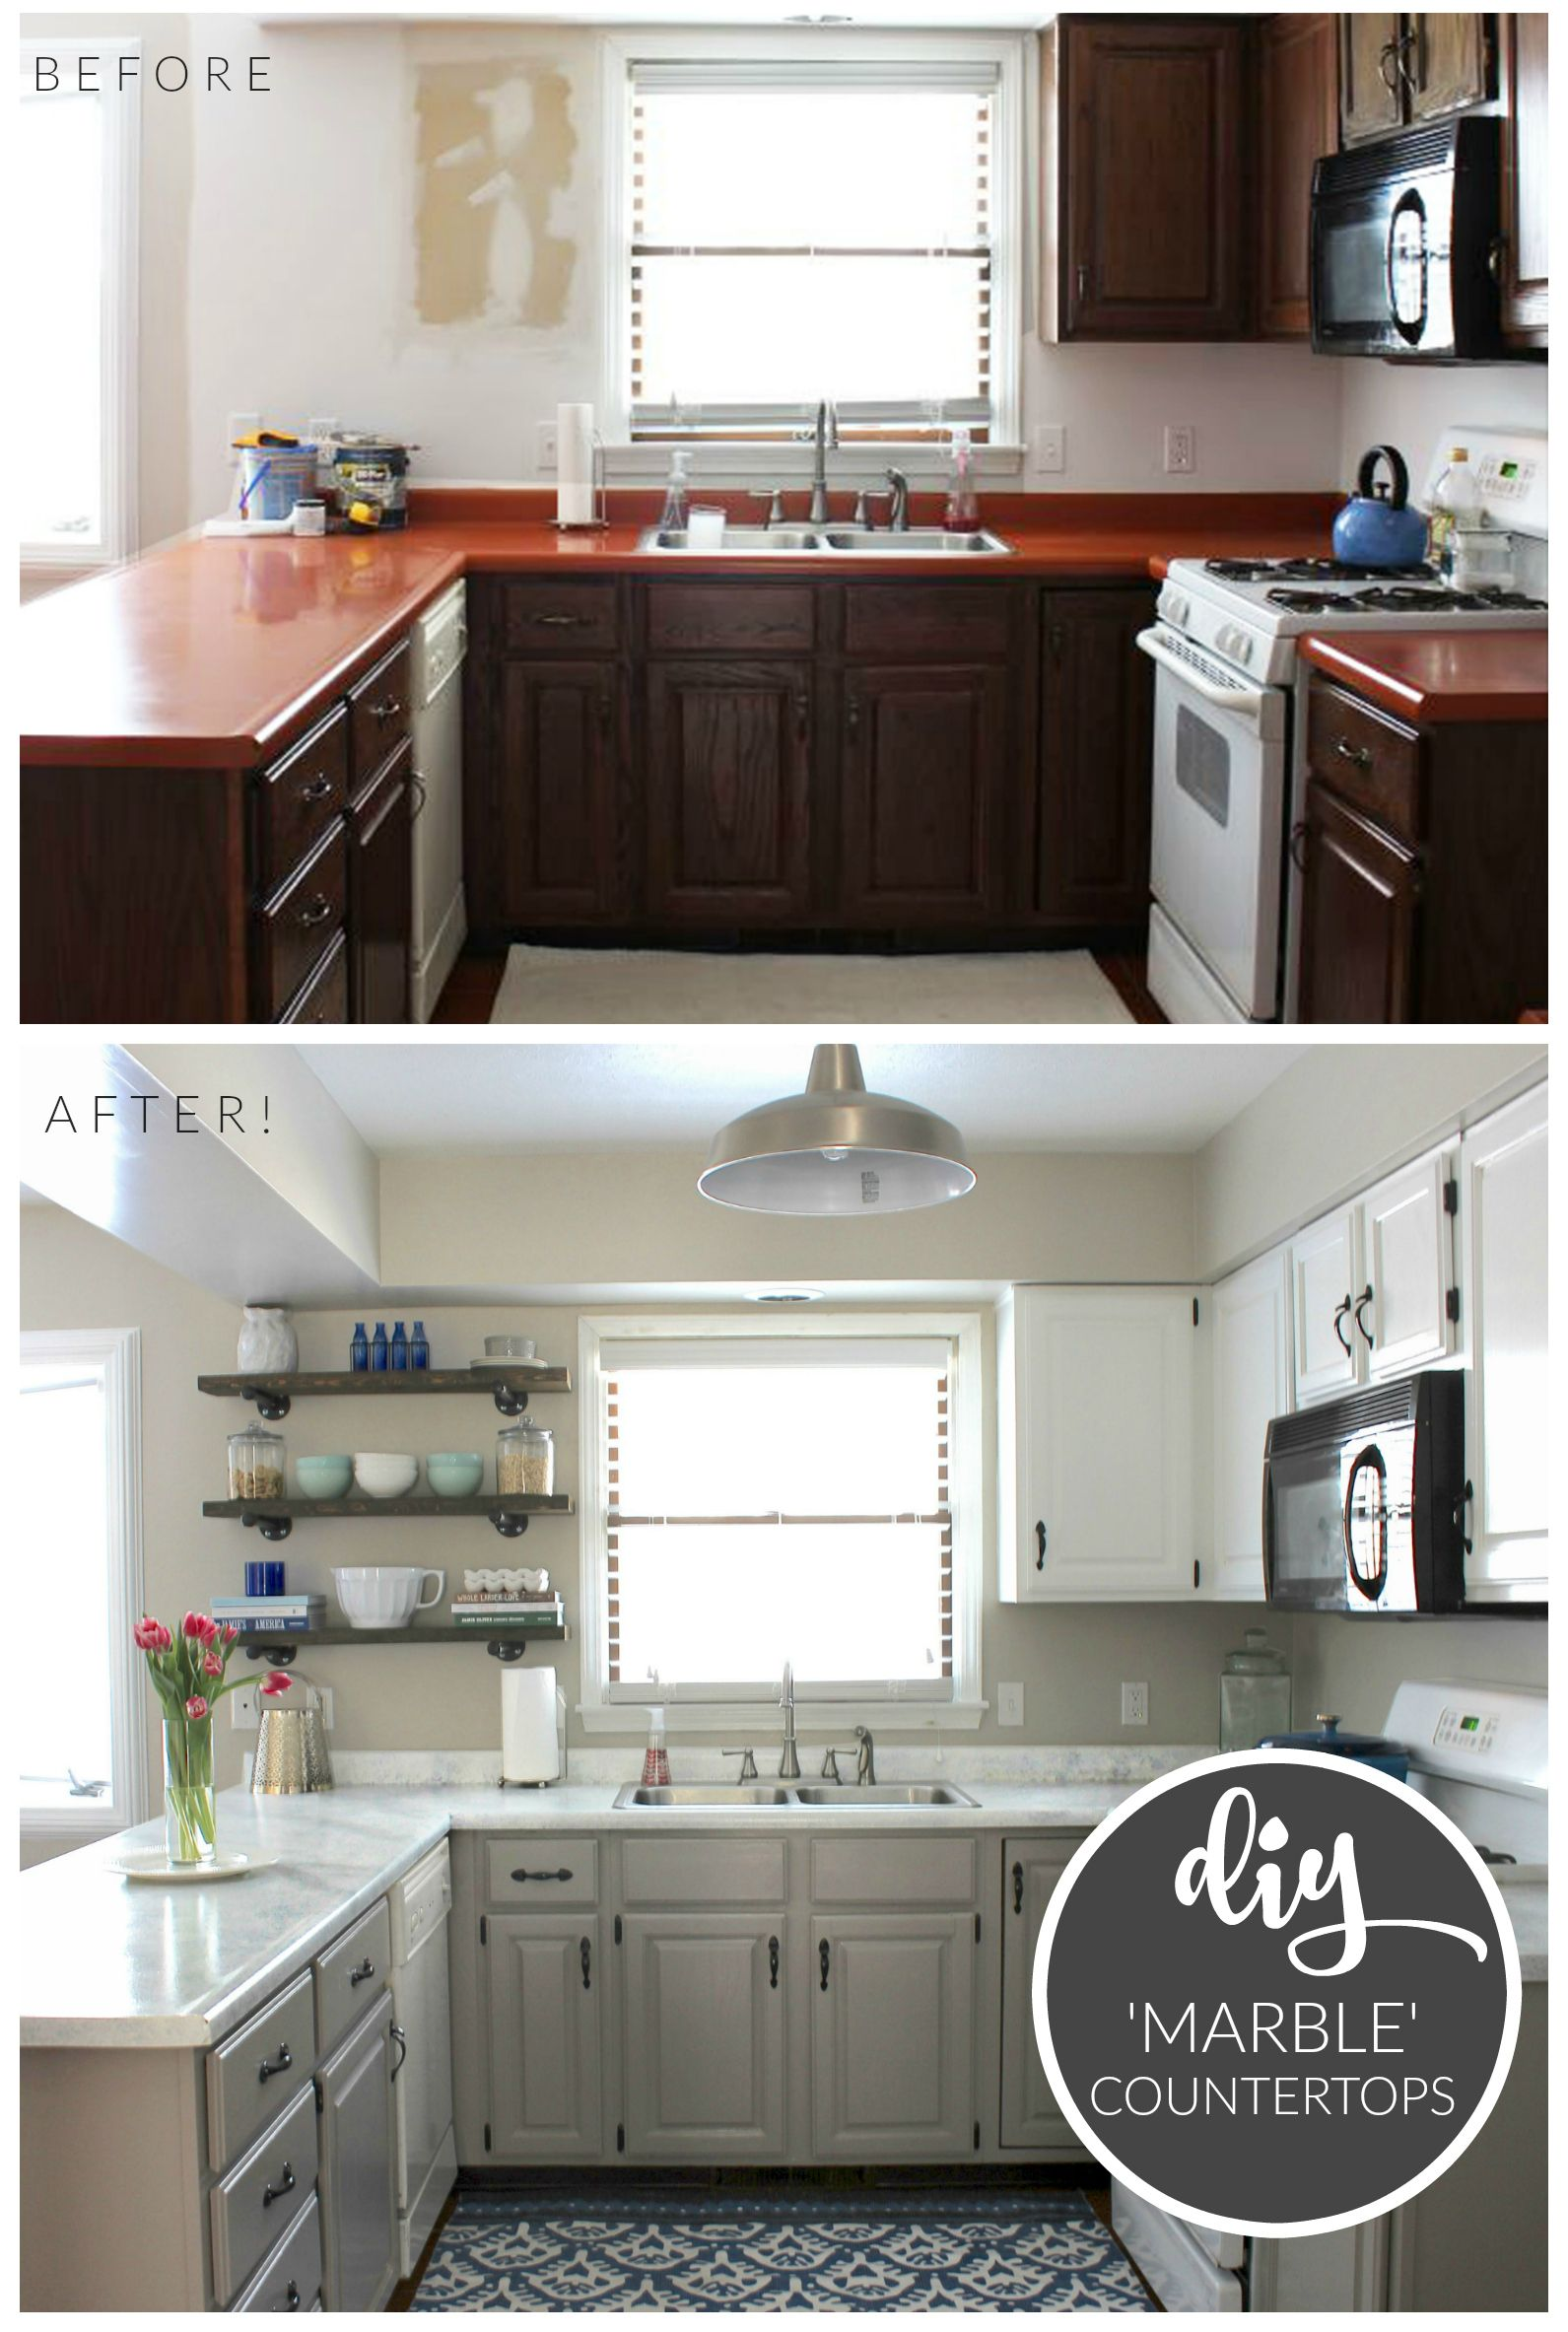 Painted Marble Countertops Budget Kitchen Makeover Diy Faux Marble Countertops Painted